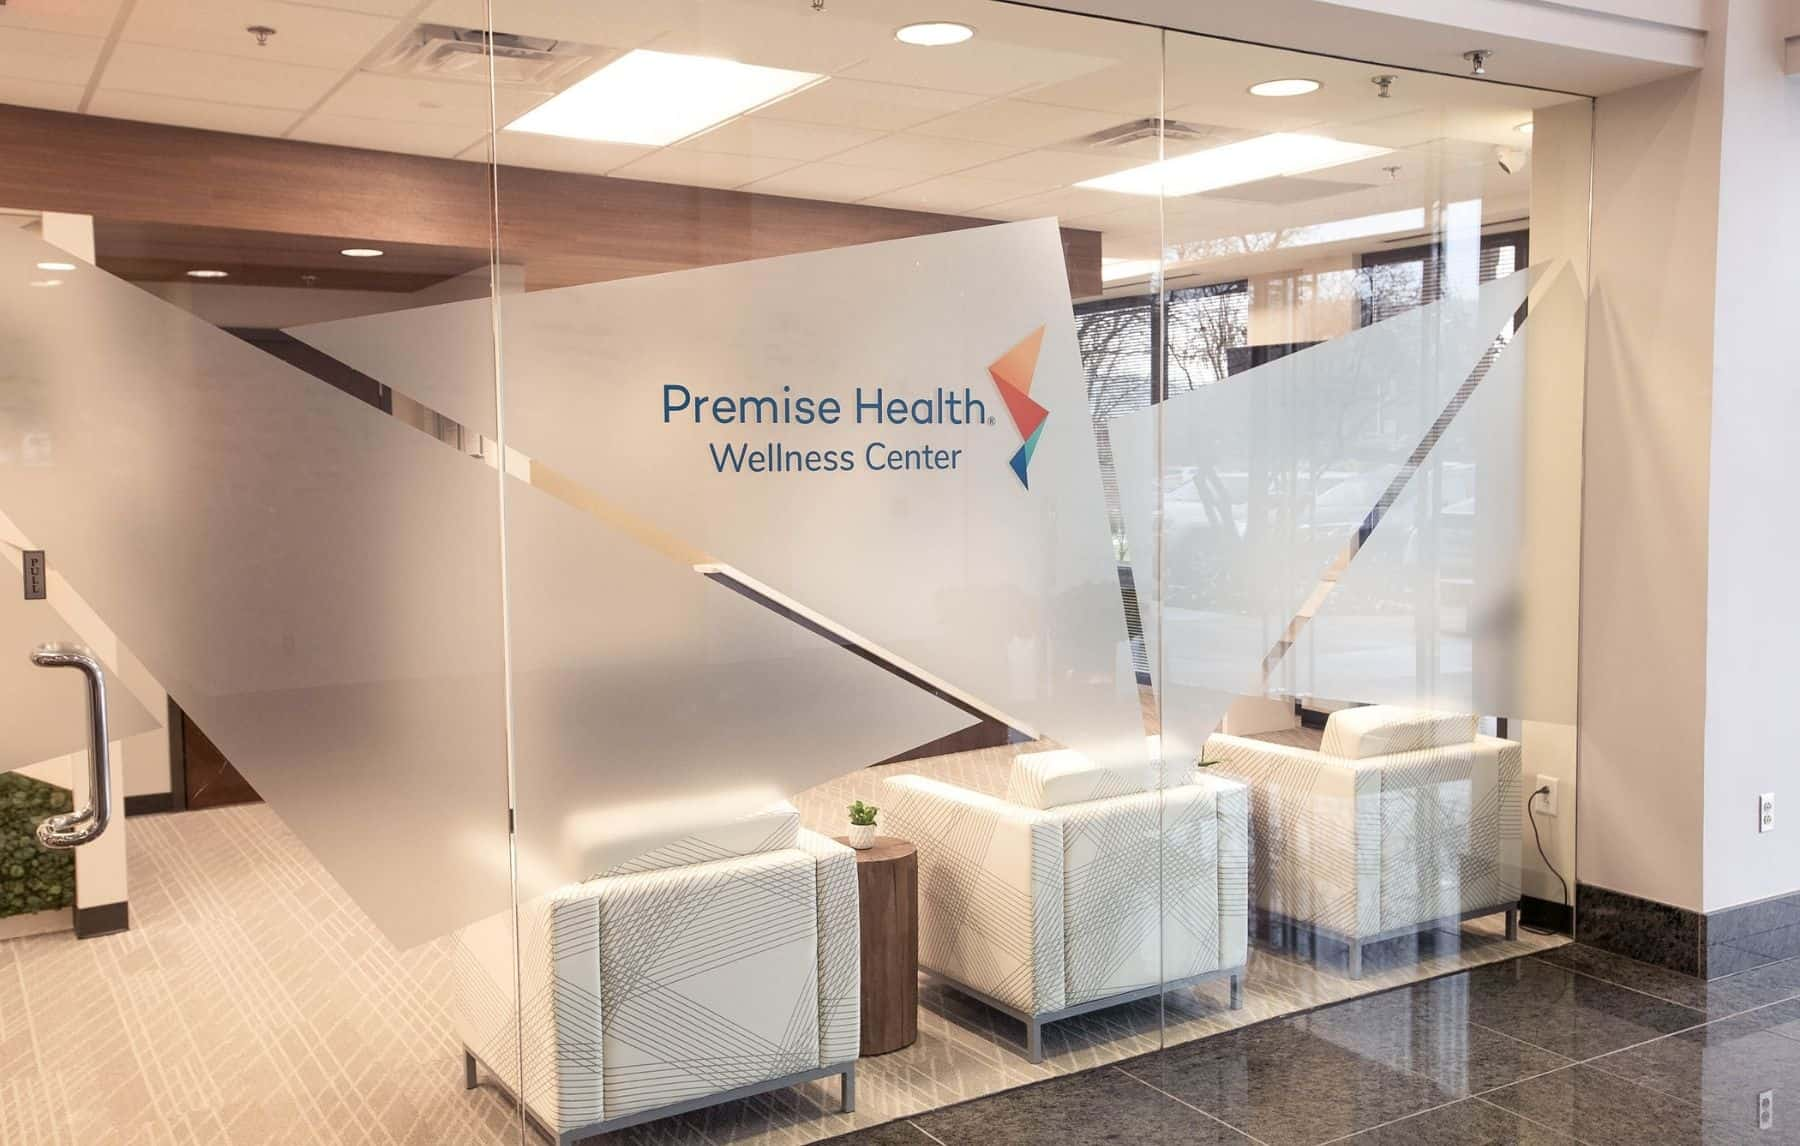 United Airlines and Premise Health collaborate to offer free COVID-19 testing pilot program